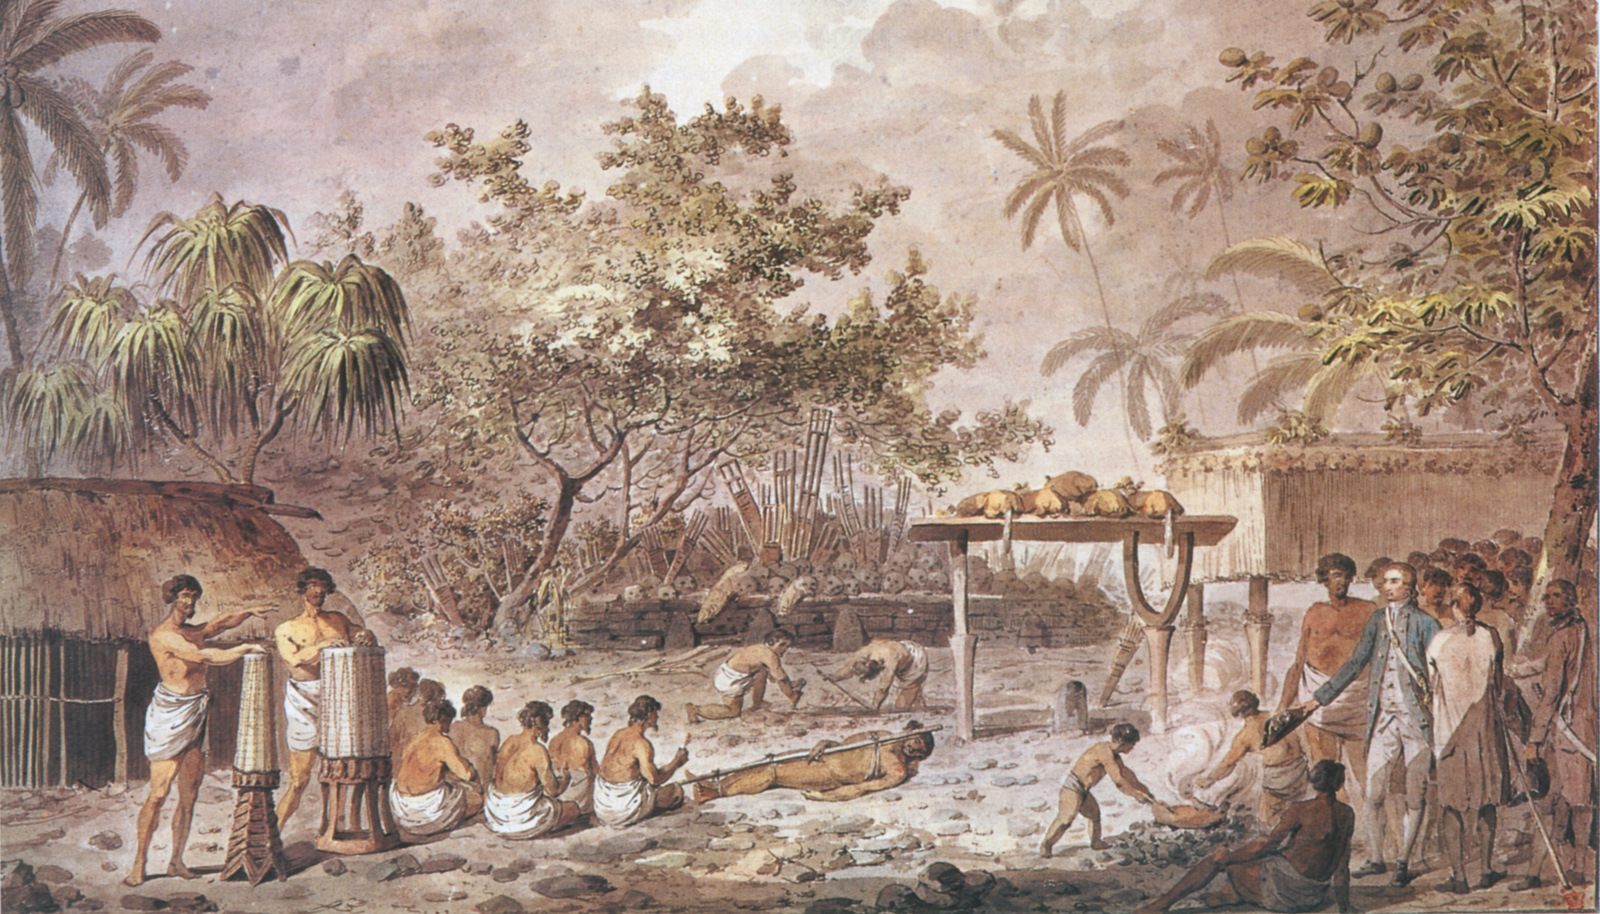 Le capitaine James Cook assiste à un sacrifice humain à Tahiti ©DR